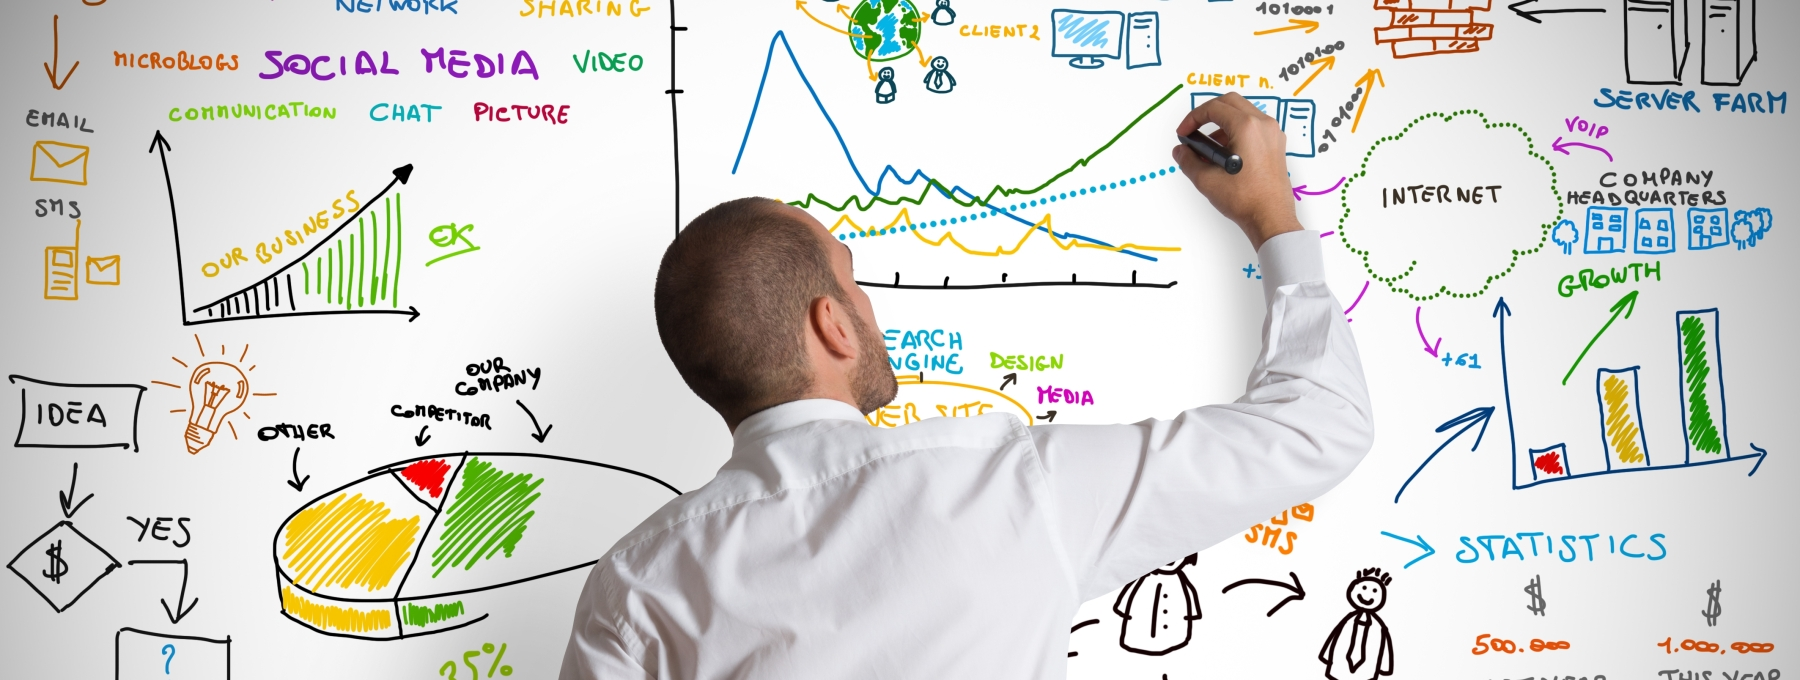 search engine optimization research papers pdf